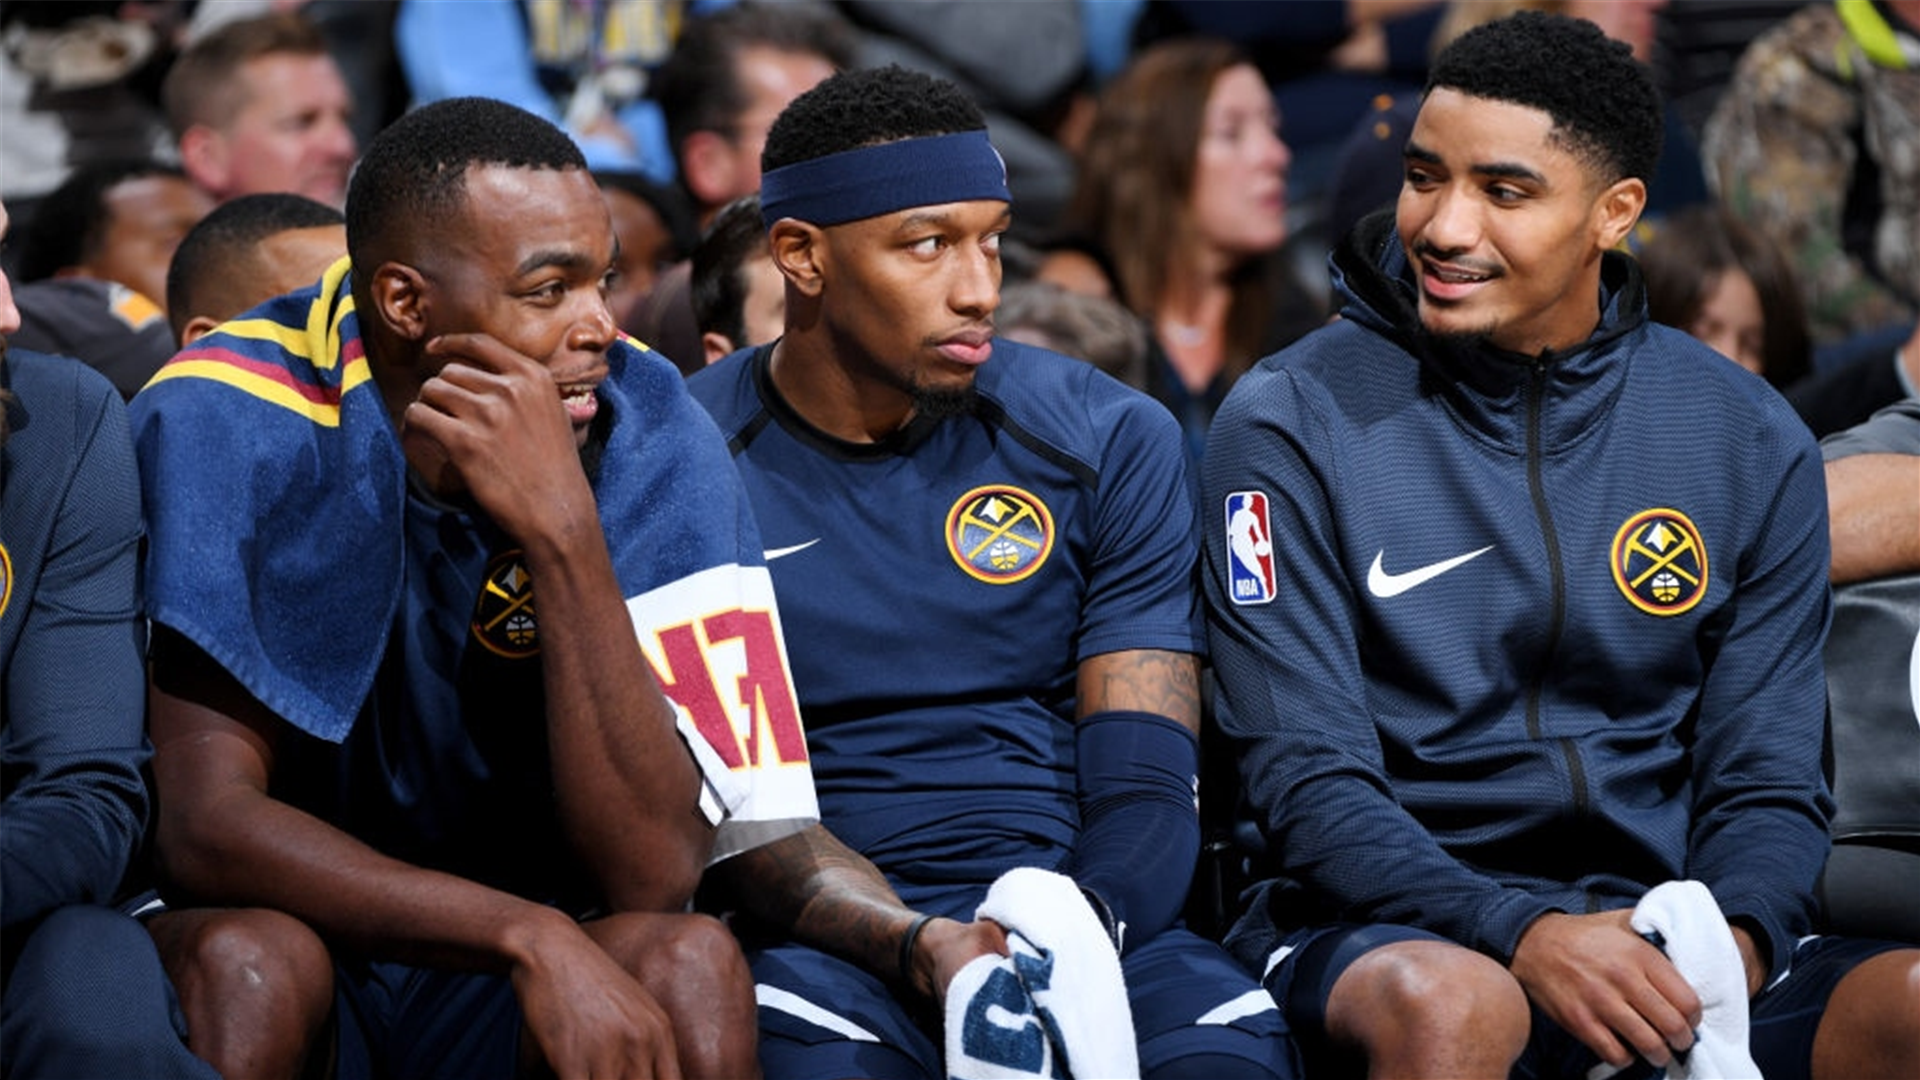 Paul Millsap (left) and Gary Harris (right) have combined to miss 16 games